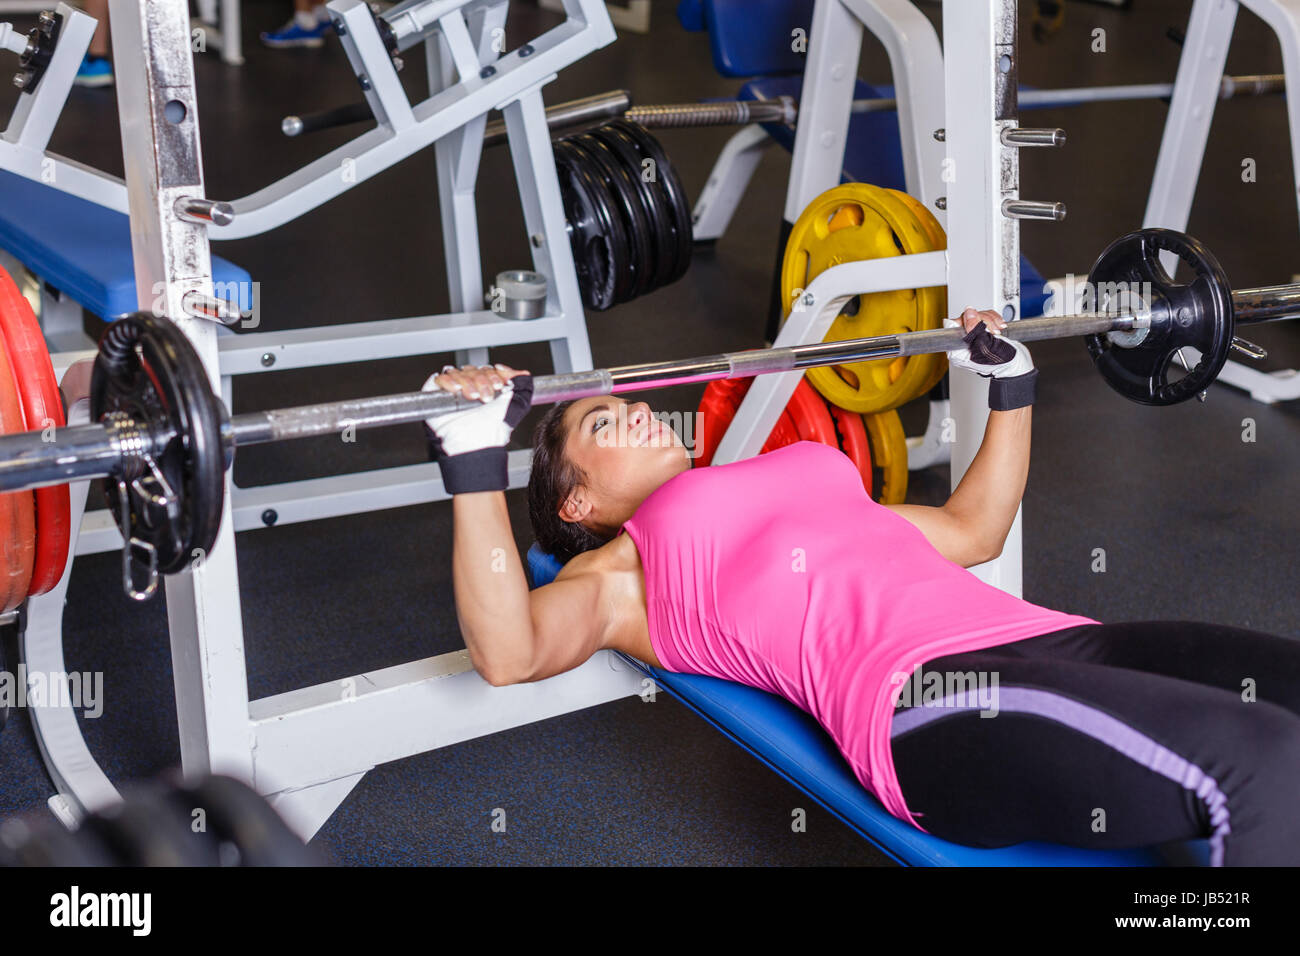 Sports Young Woman Doing Exercises With Barbell On Bench In The Gym Stock Photo Alamy